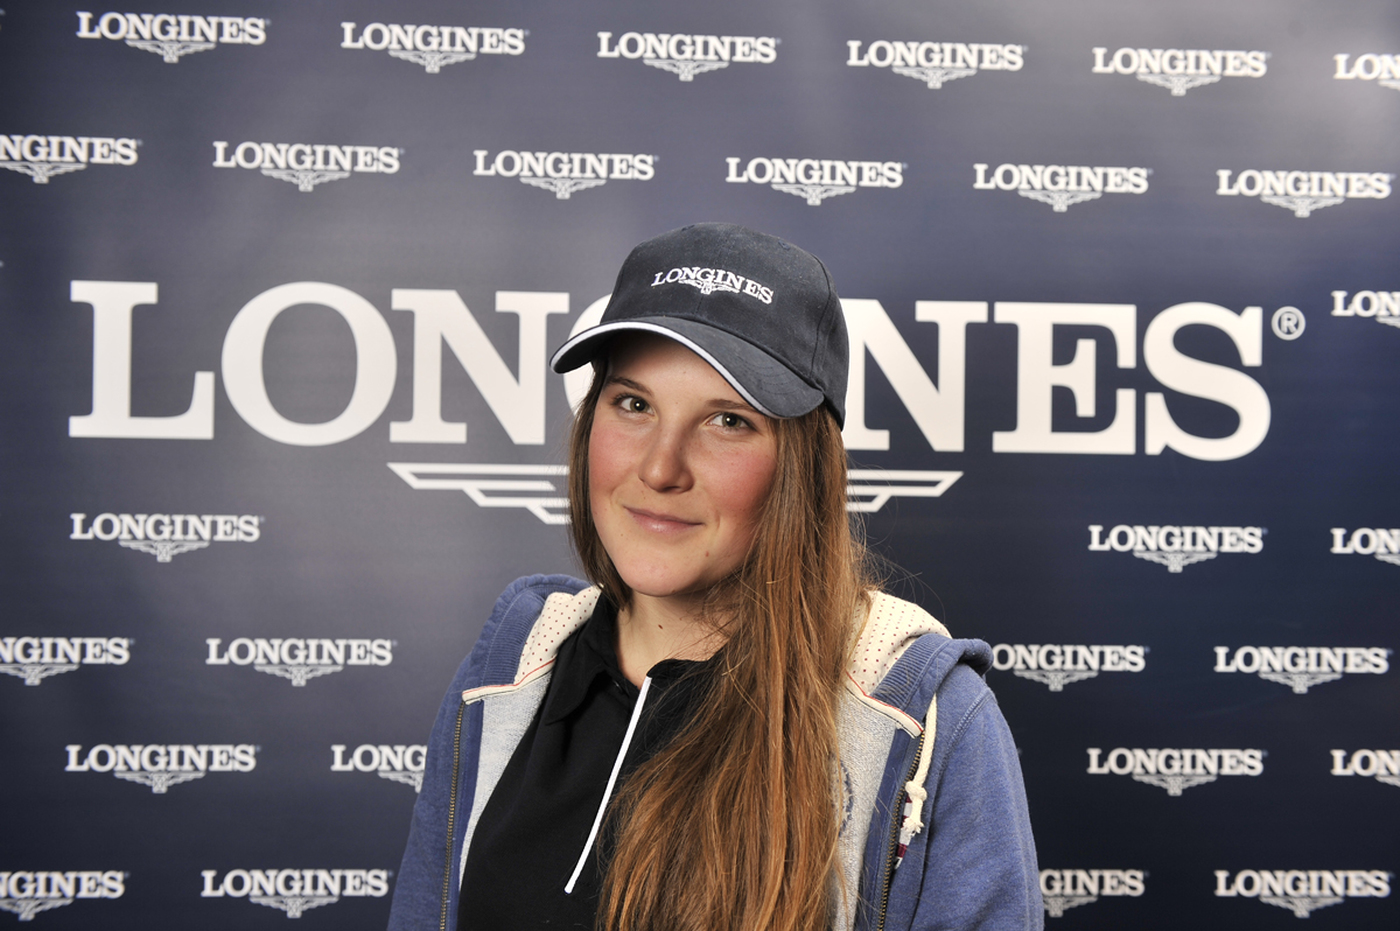 Longines Alpine Skiing Event: Second edition of the Longines Future Ski Champions – A successful 100% female competition in Val d'Isère 17